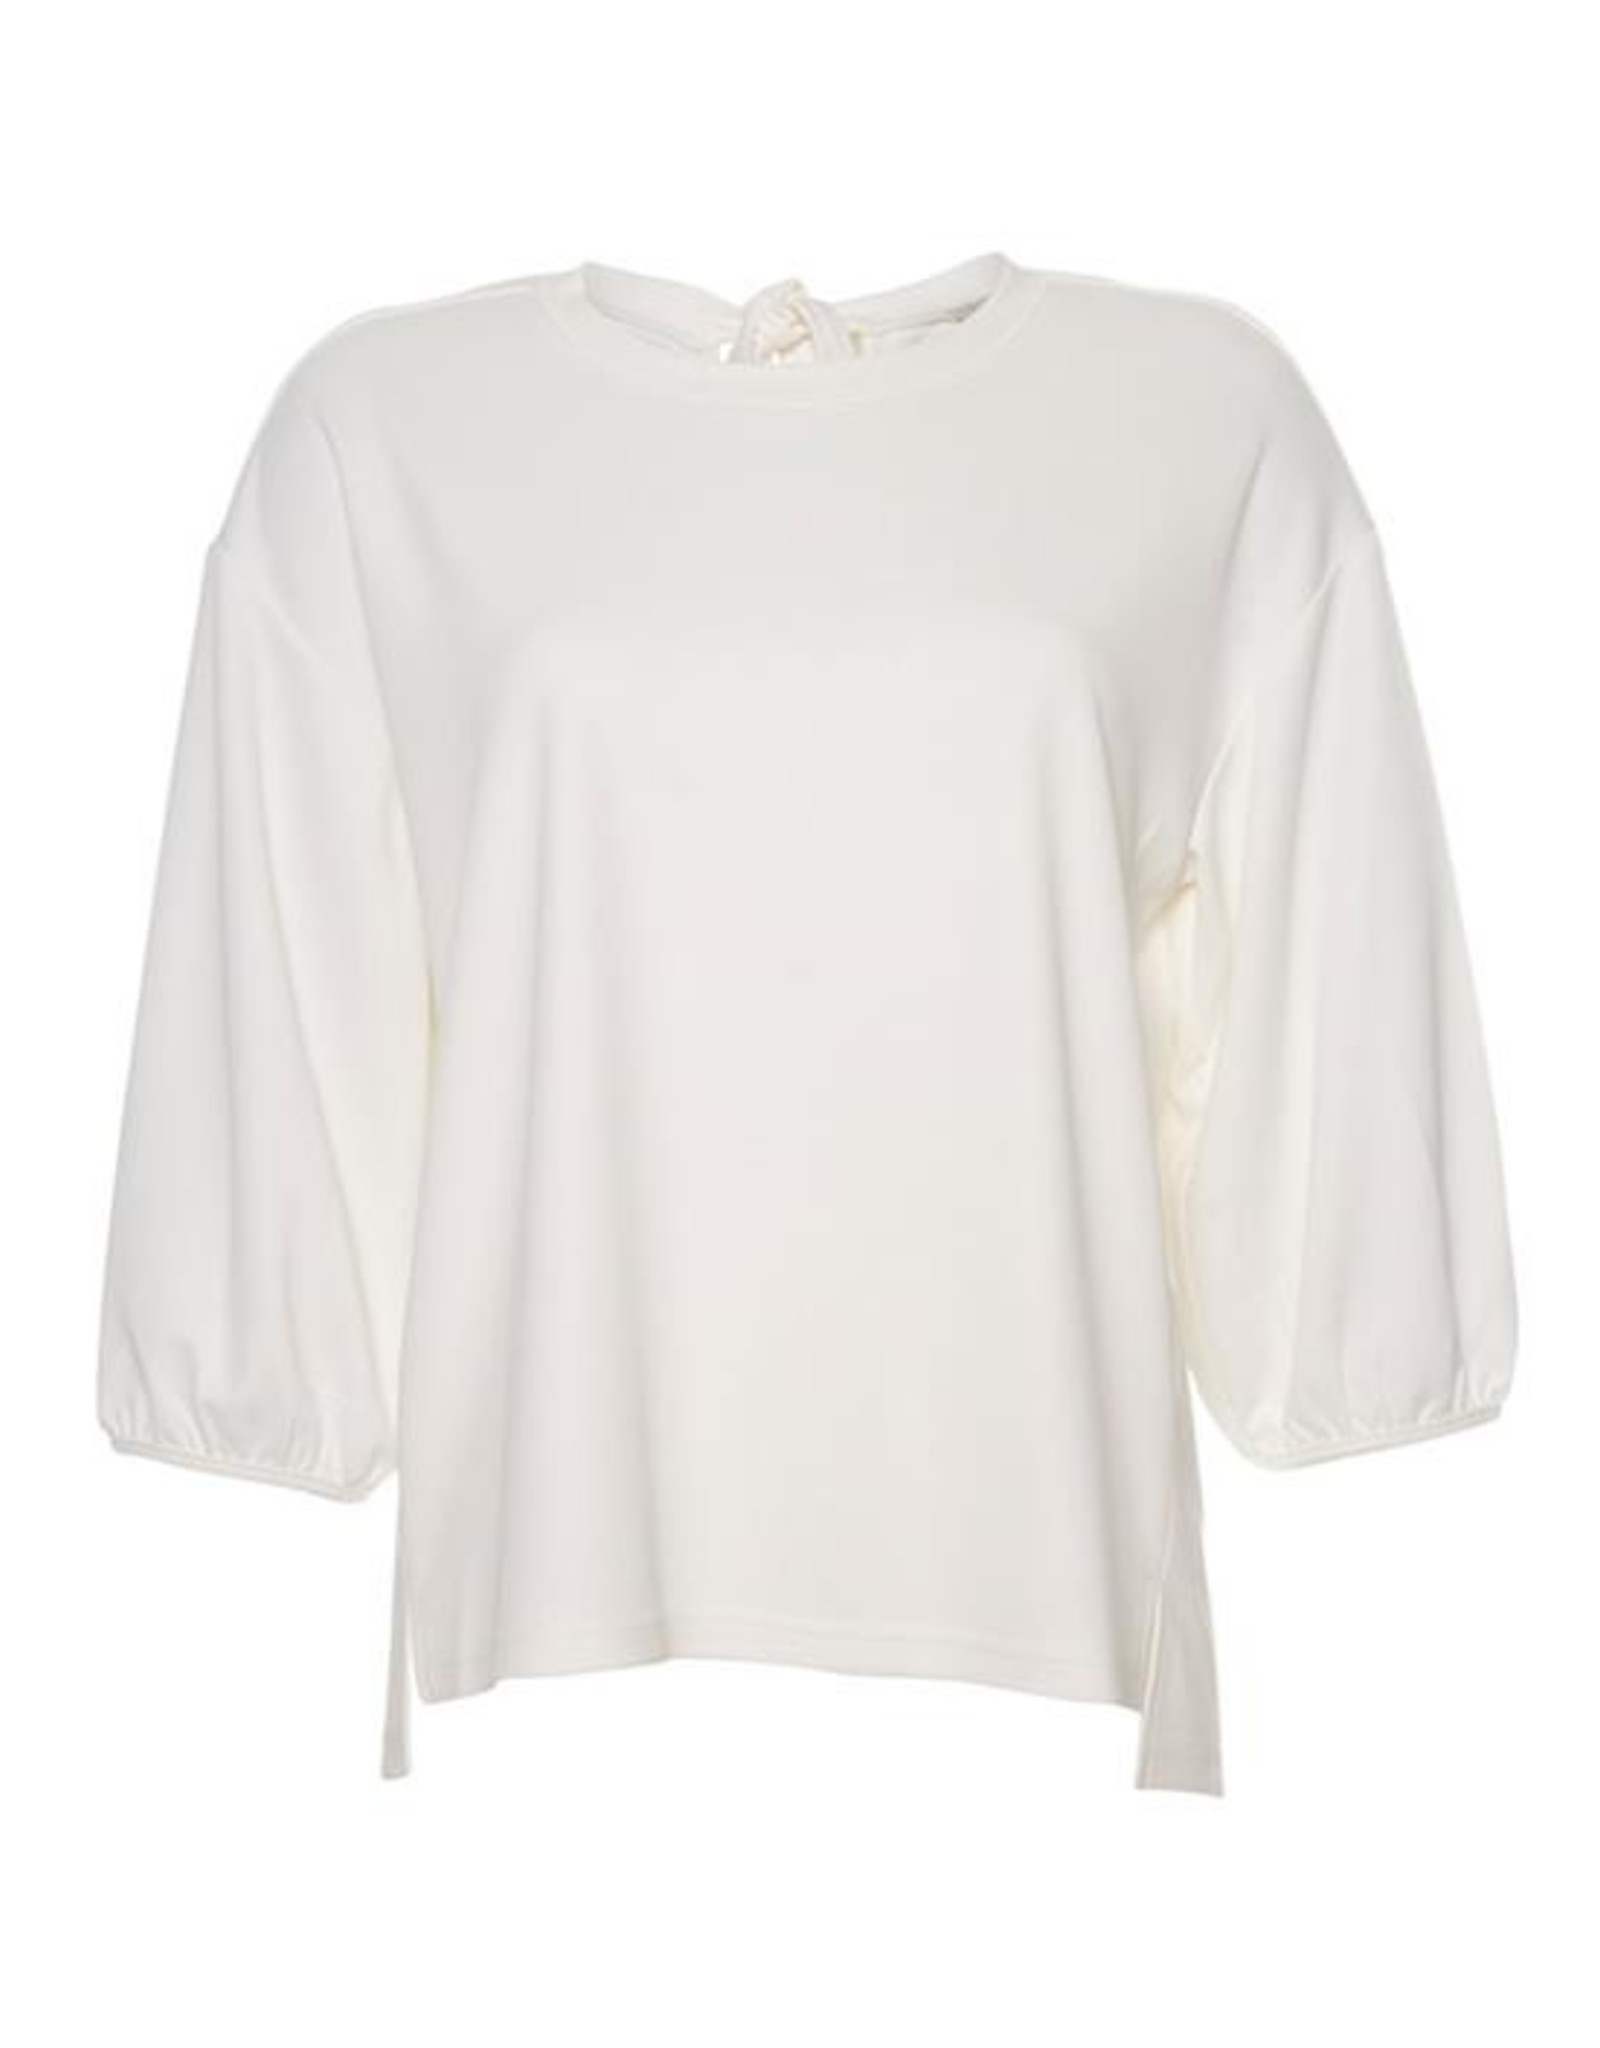 JcSophie Channing top off white C5038